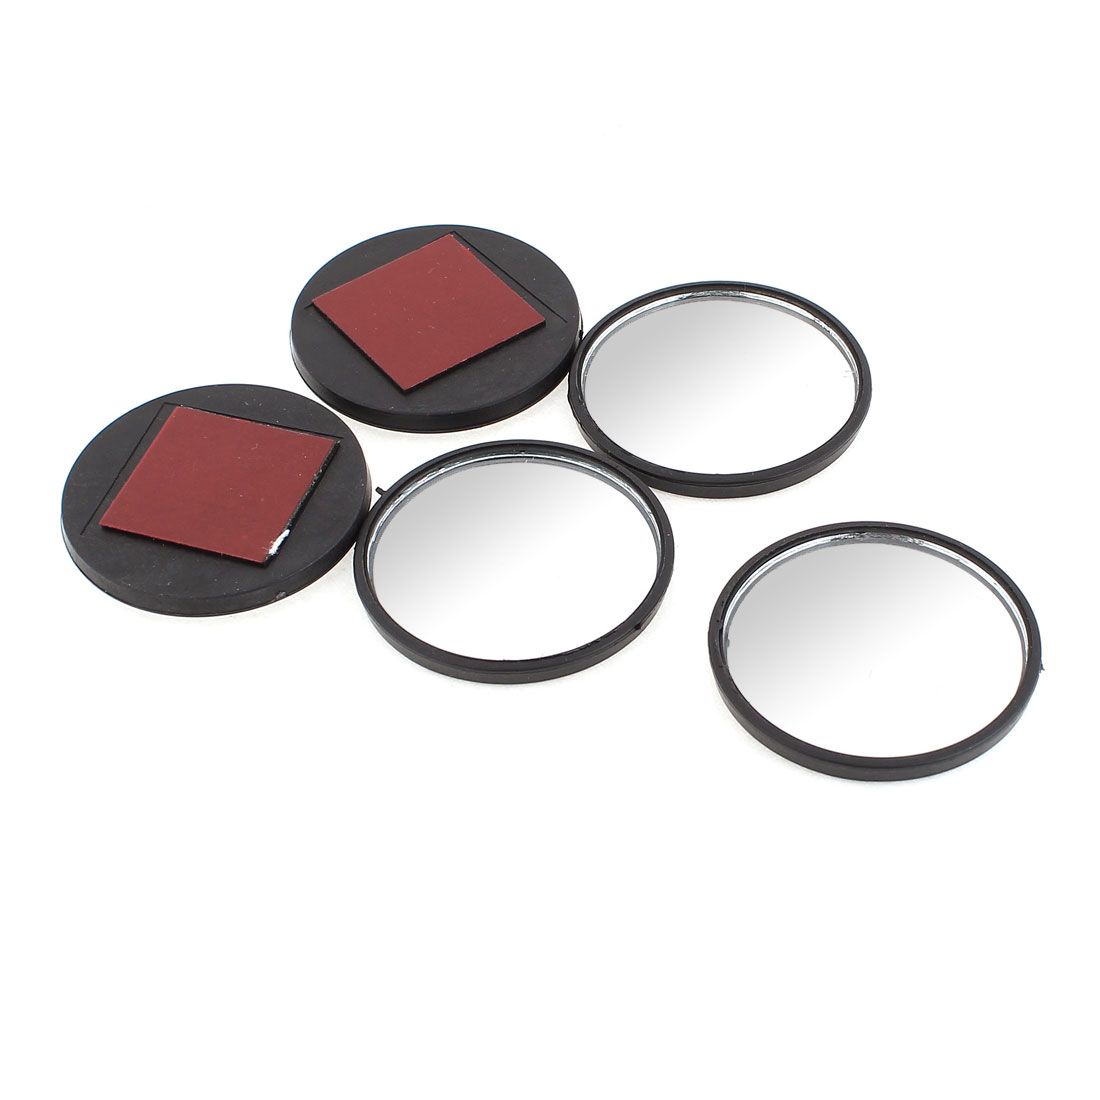 5 Pcs Self-Adhesive Car Rear View Blind Spot Round Mirrors 52mm Dia Black